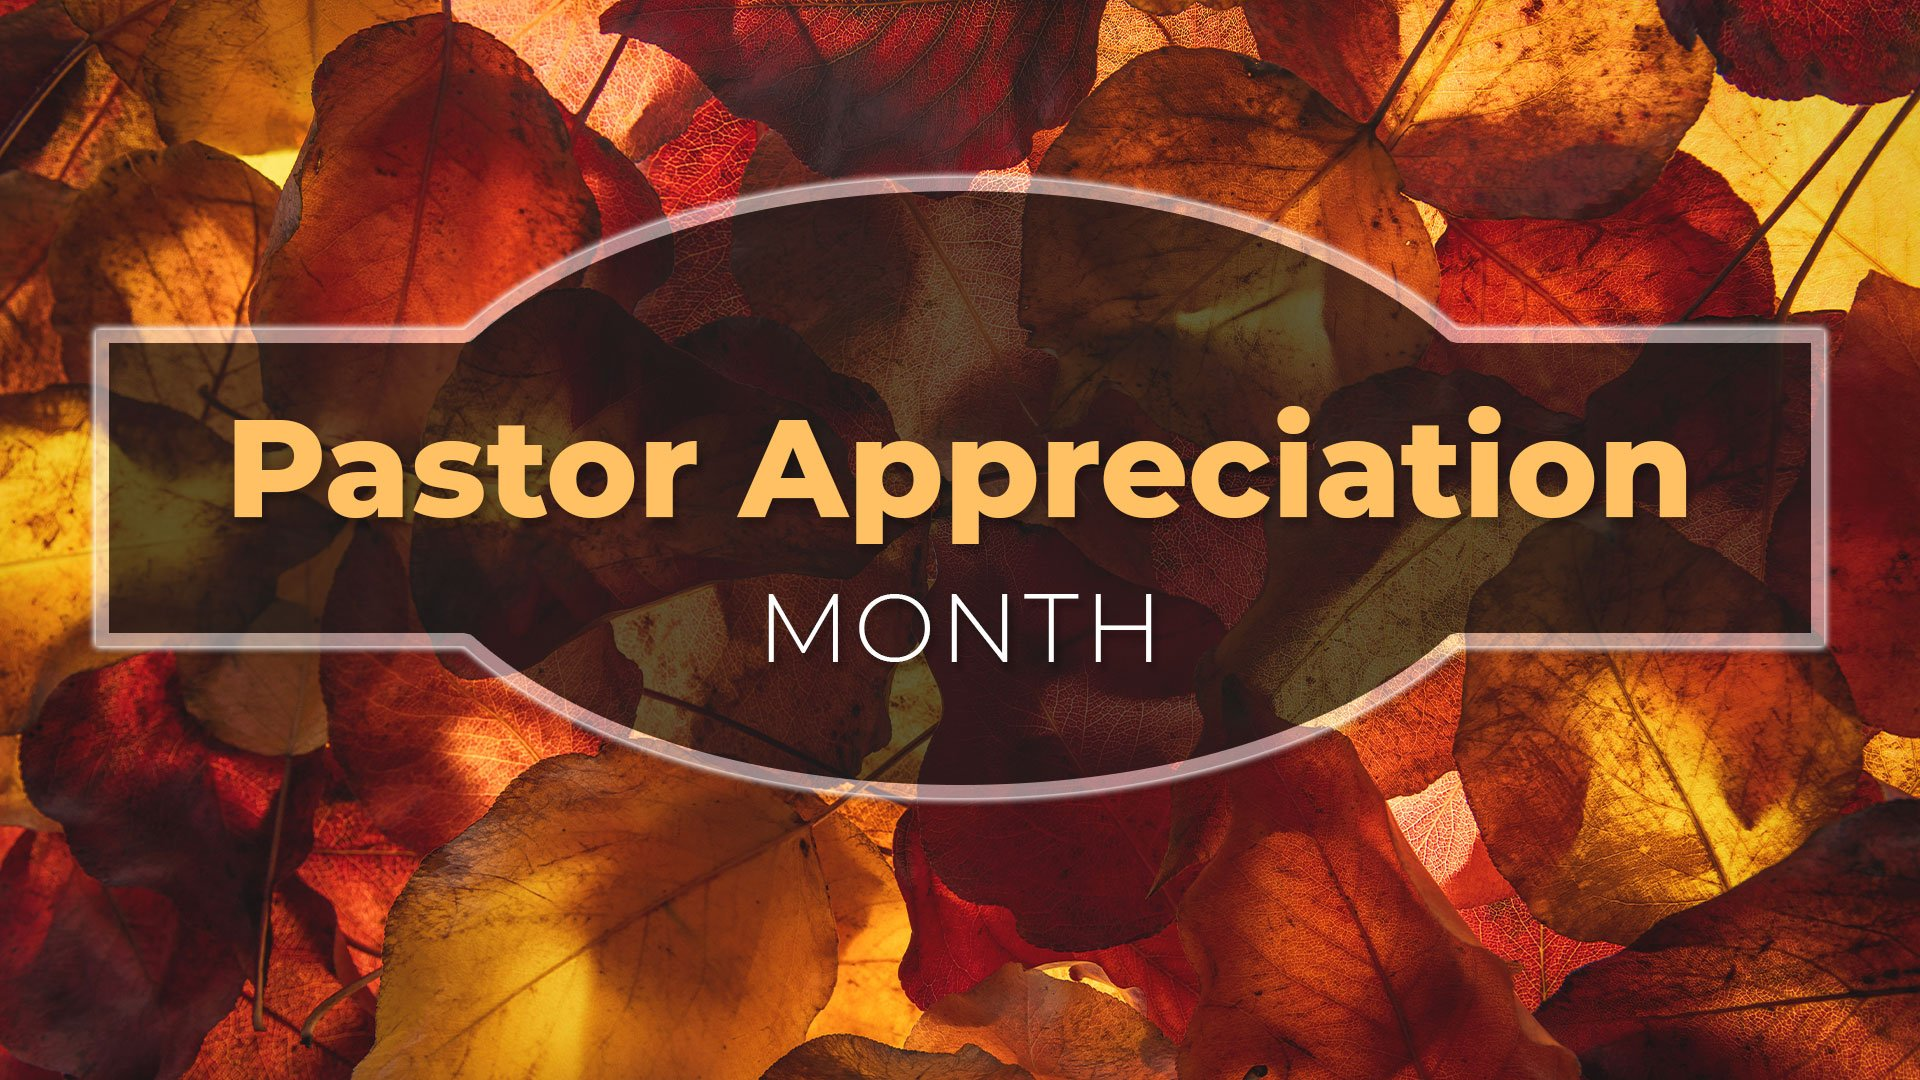 Pastor Appreciation Month flyer